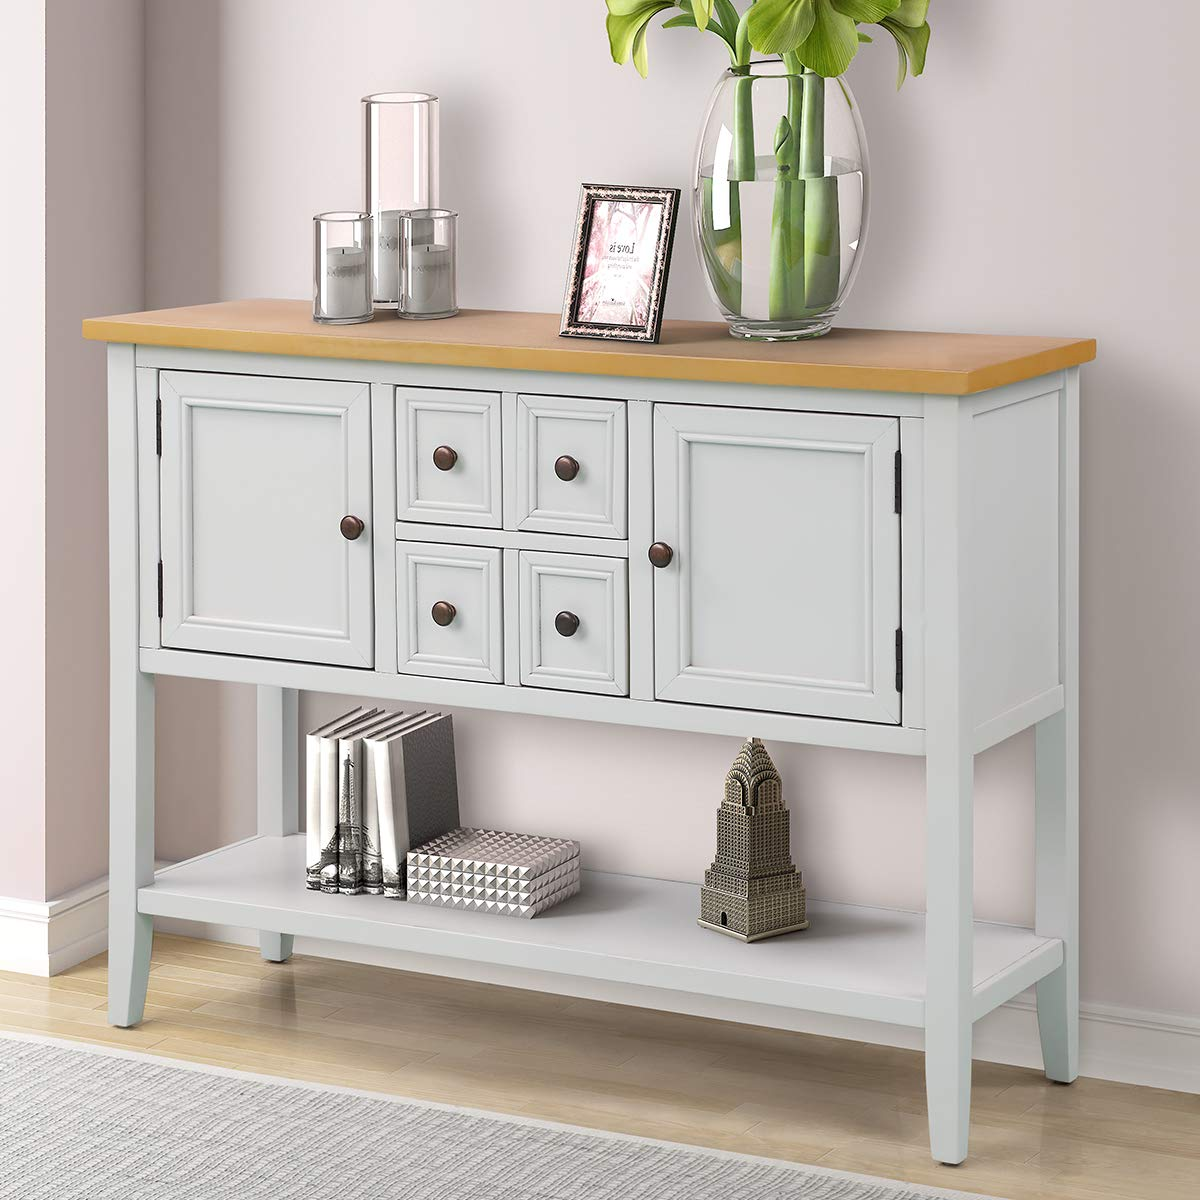 EiioX Console Table with Bottom Shelf Buffet Sideboard Desk for Livingroom Dining Room, Exquisite Handle, 2 Cabinets and 4 Drawers, Lime White